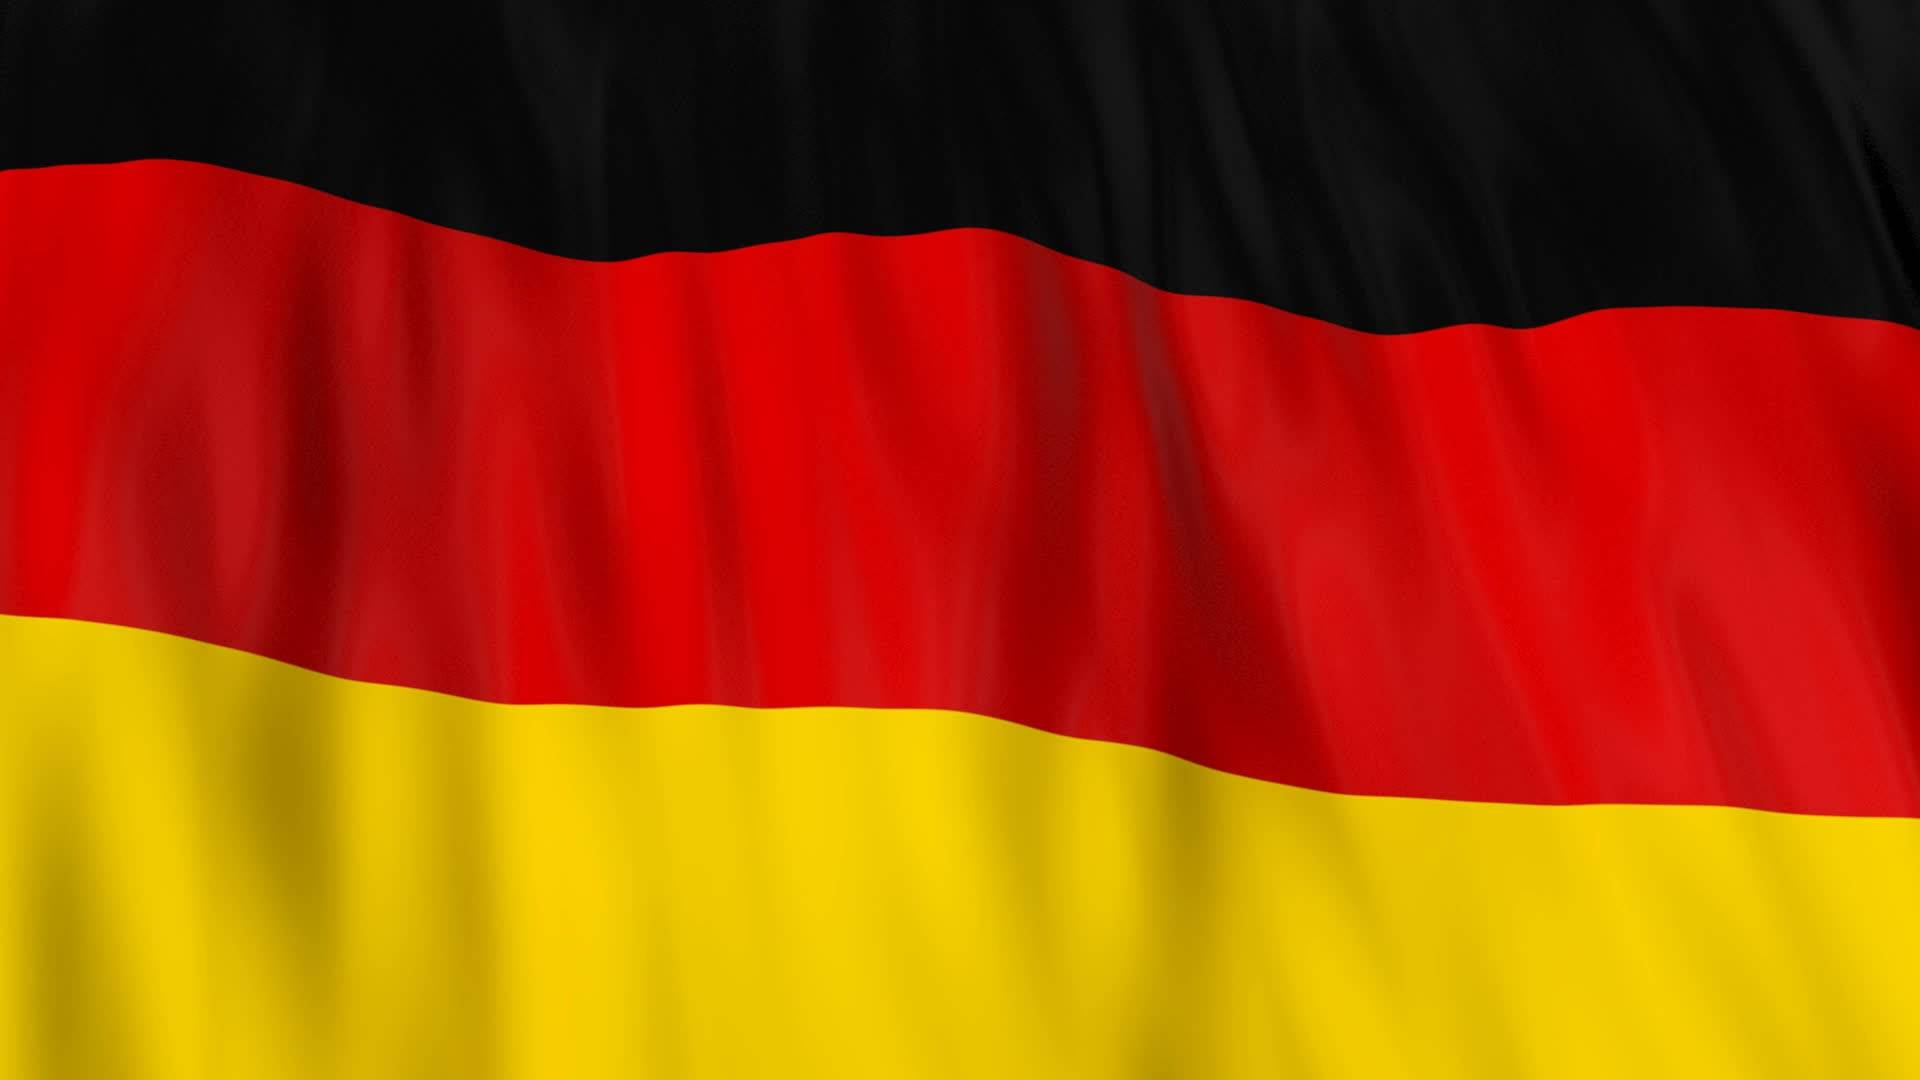 germany flag wallpaper vertical - photo #26